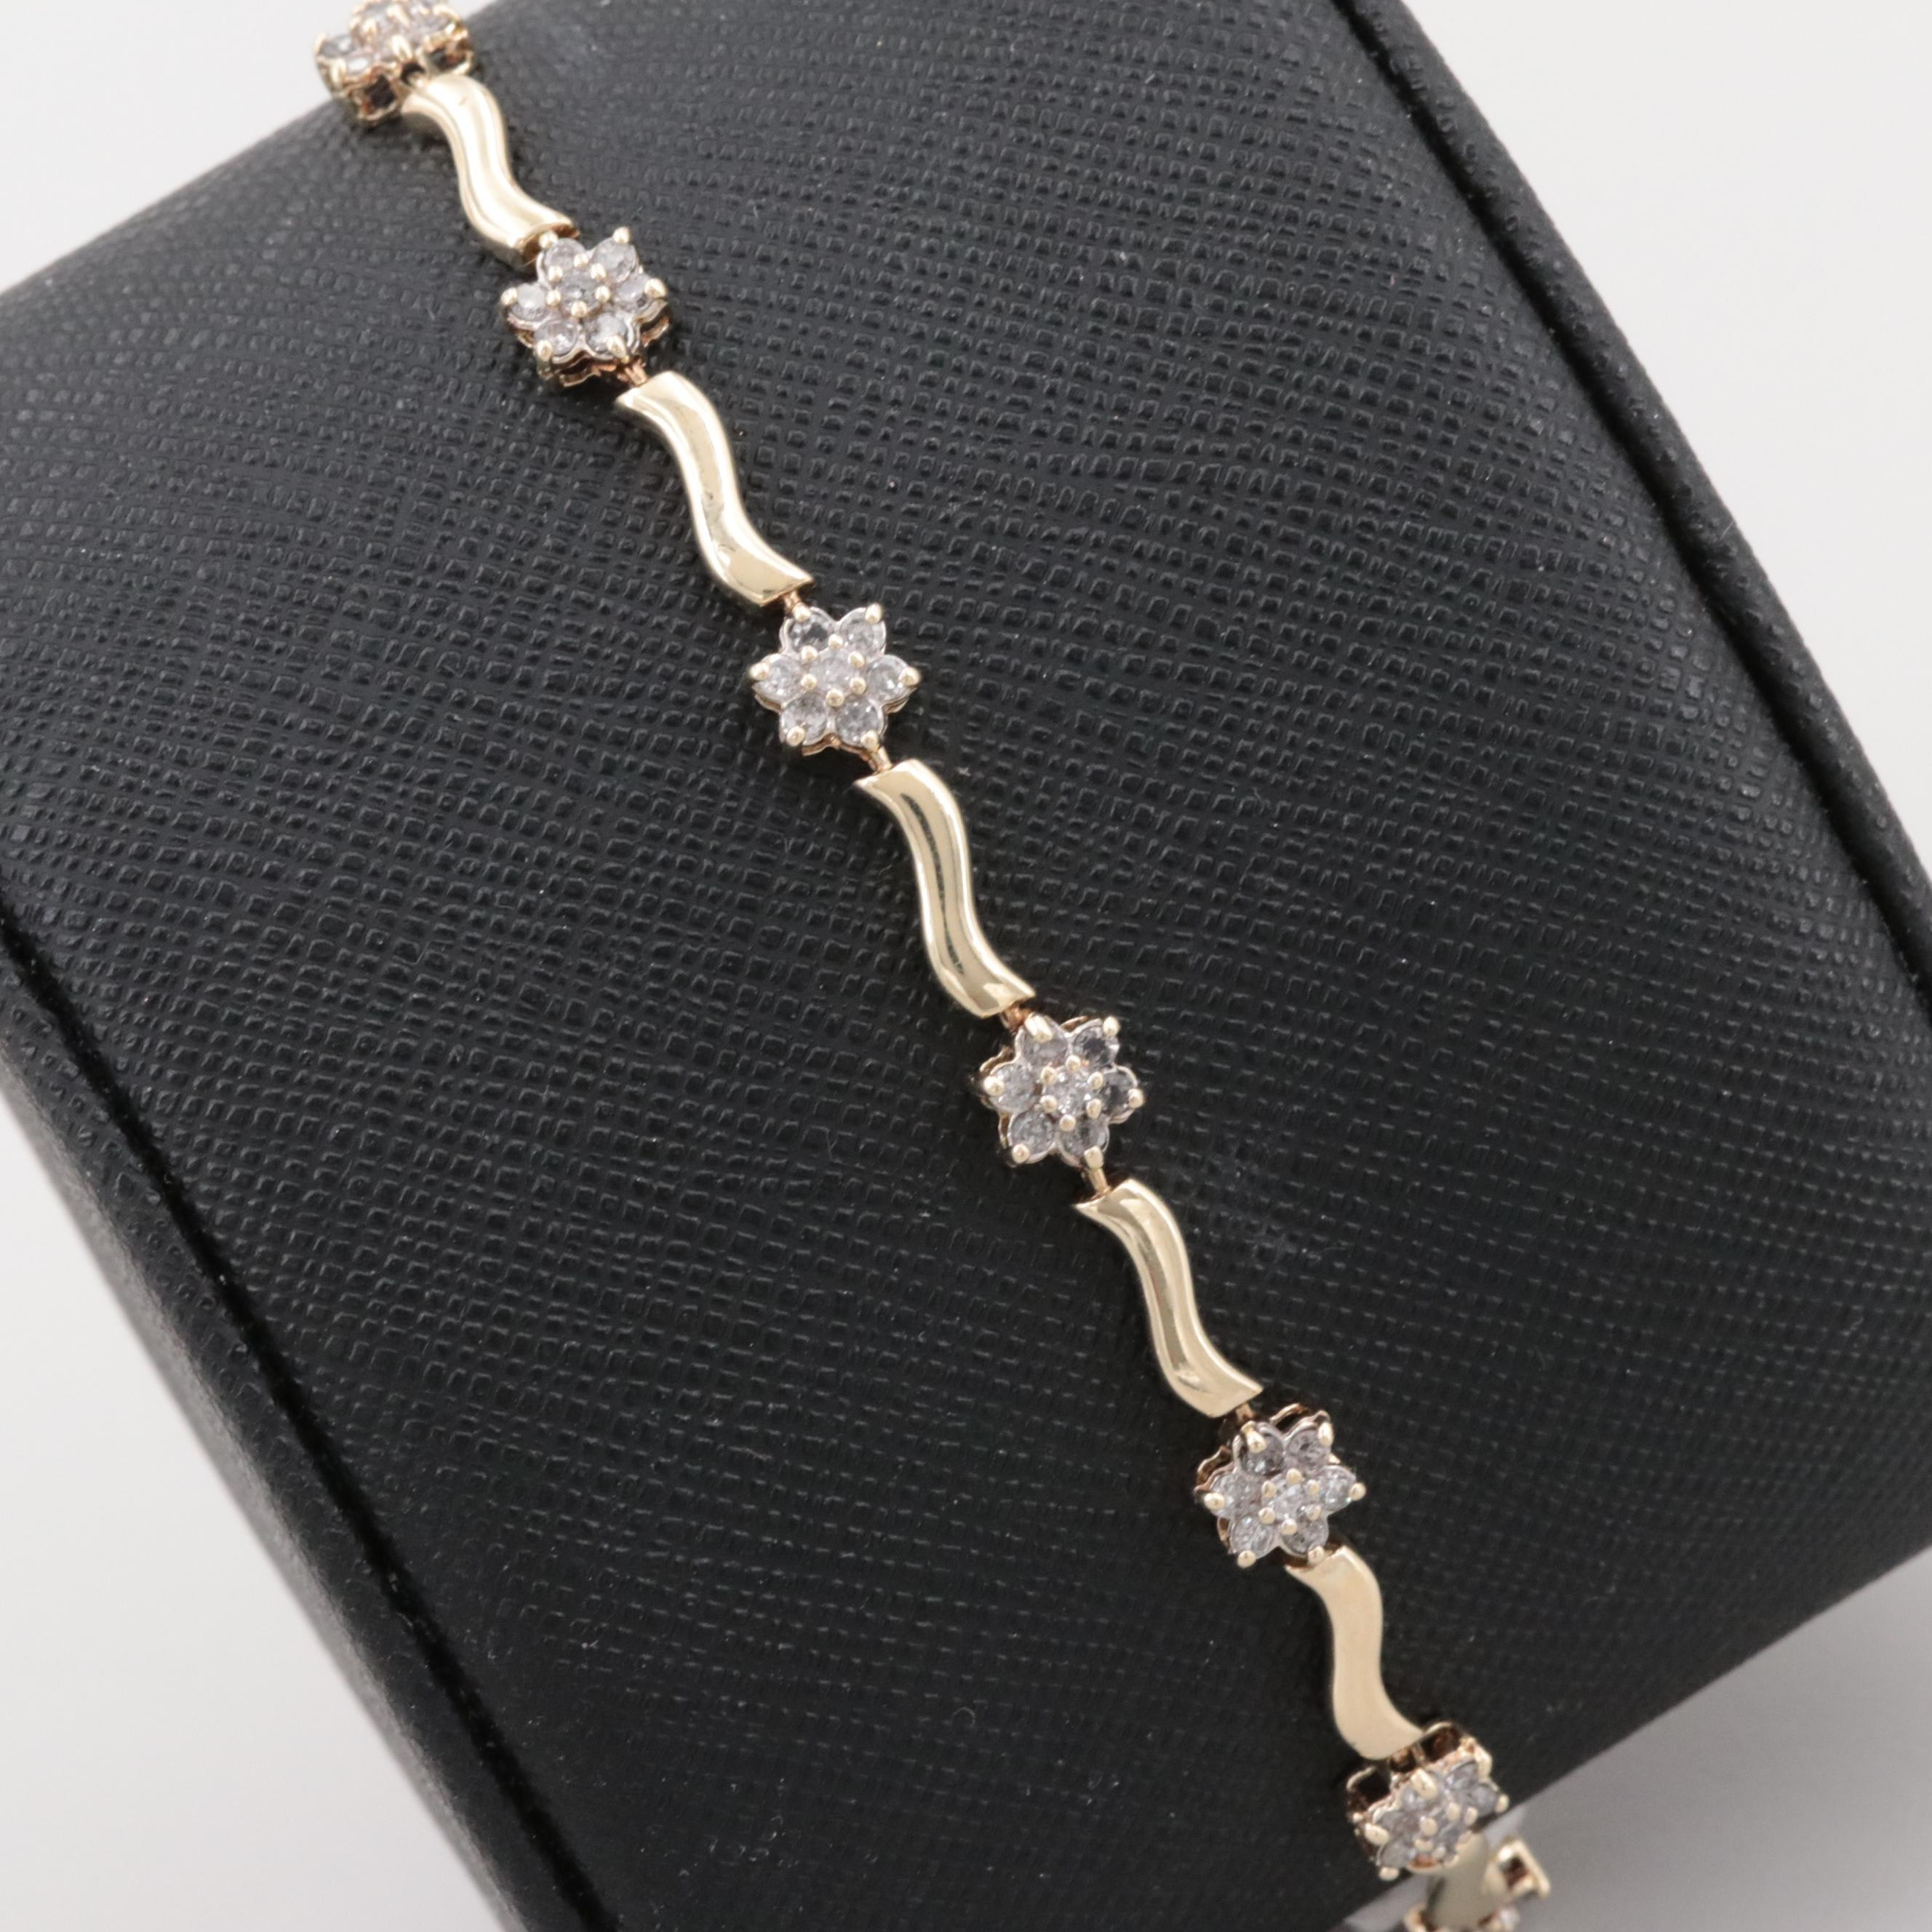 10K and 14K Yellow Gold 1.05 CTW Diamond Tennis Bracelet